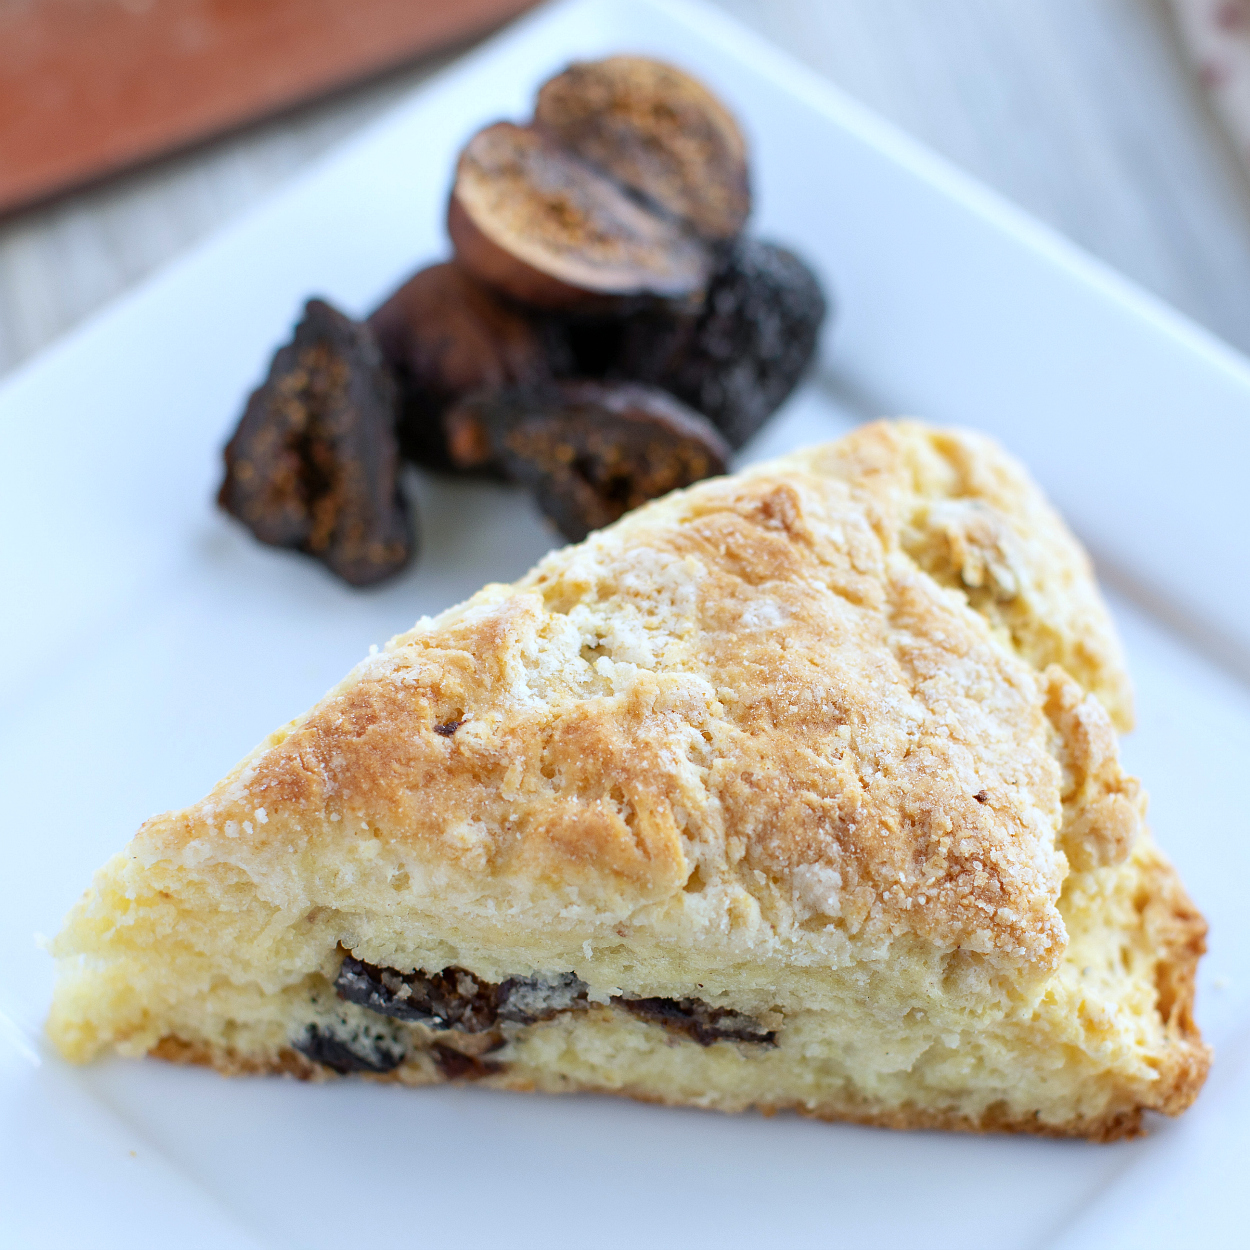 insta cardamom fig scone with dried figs